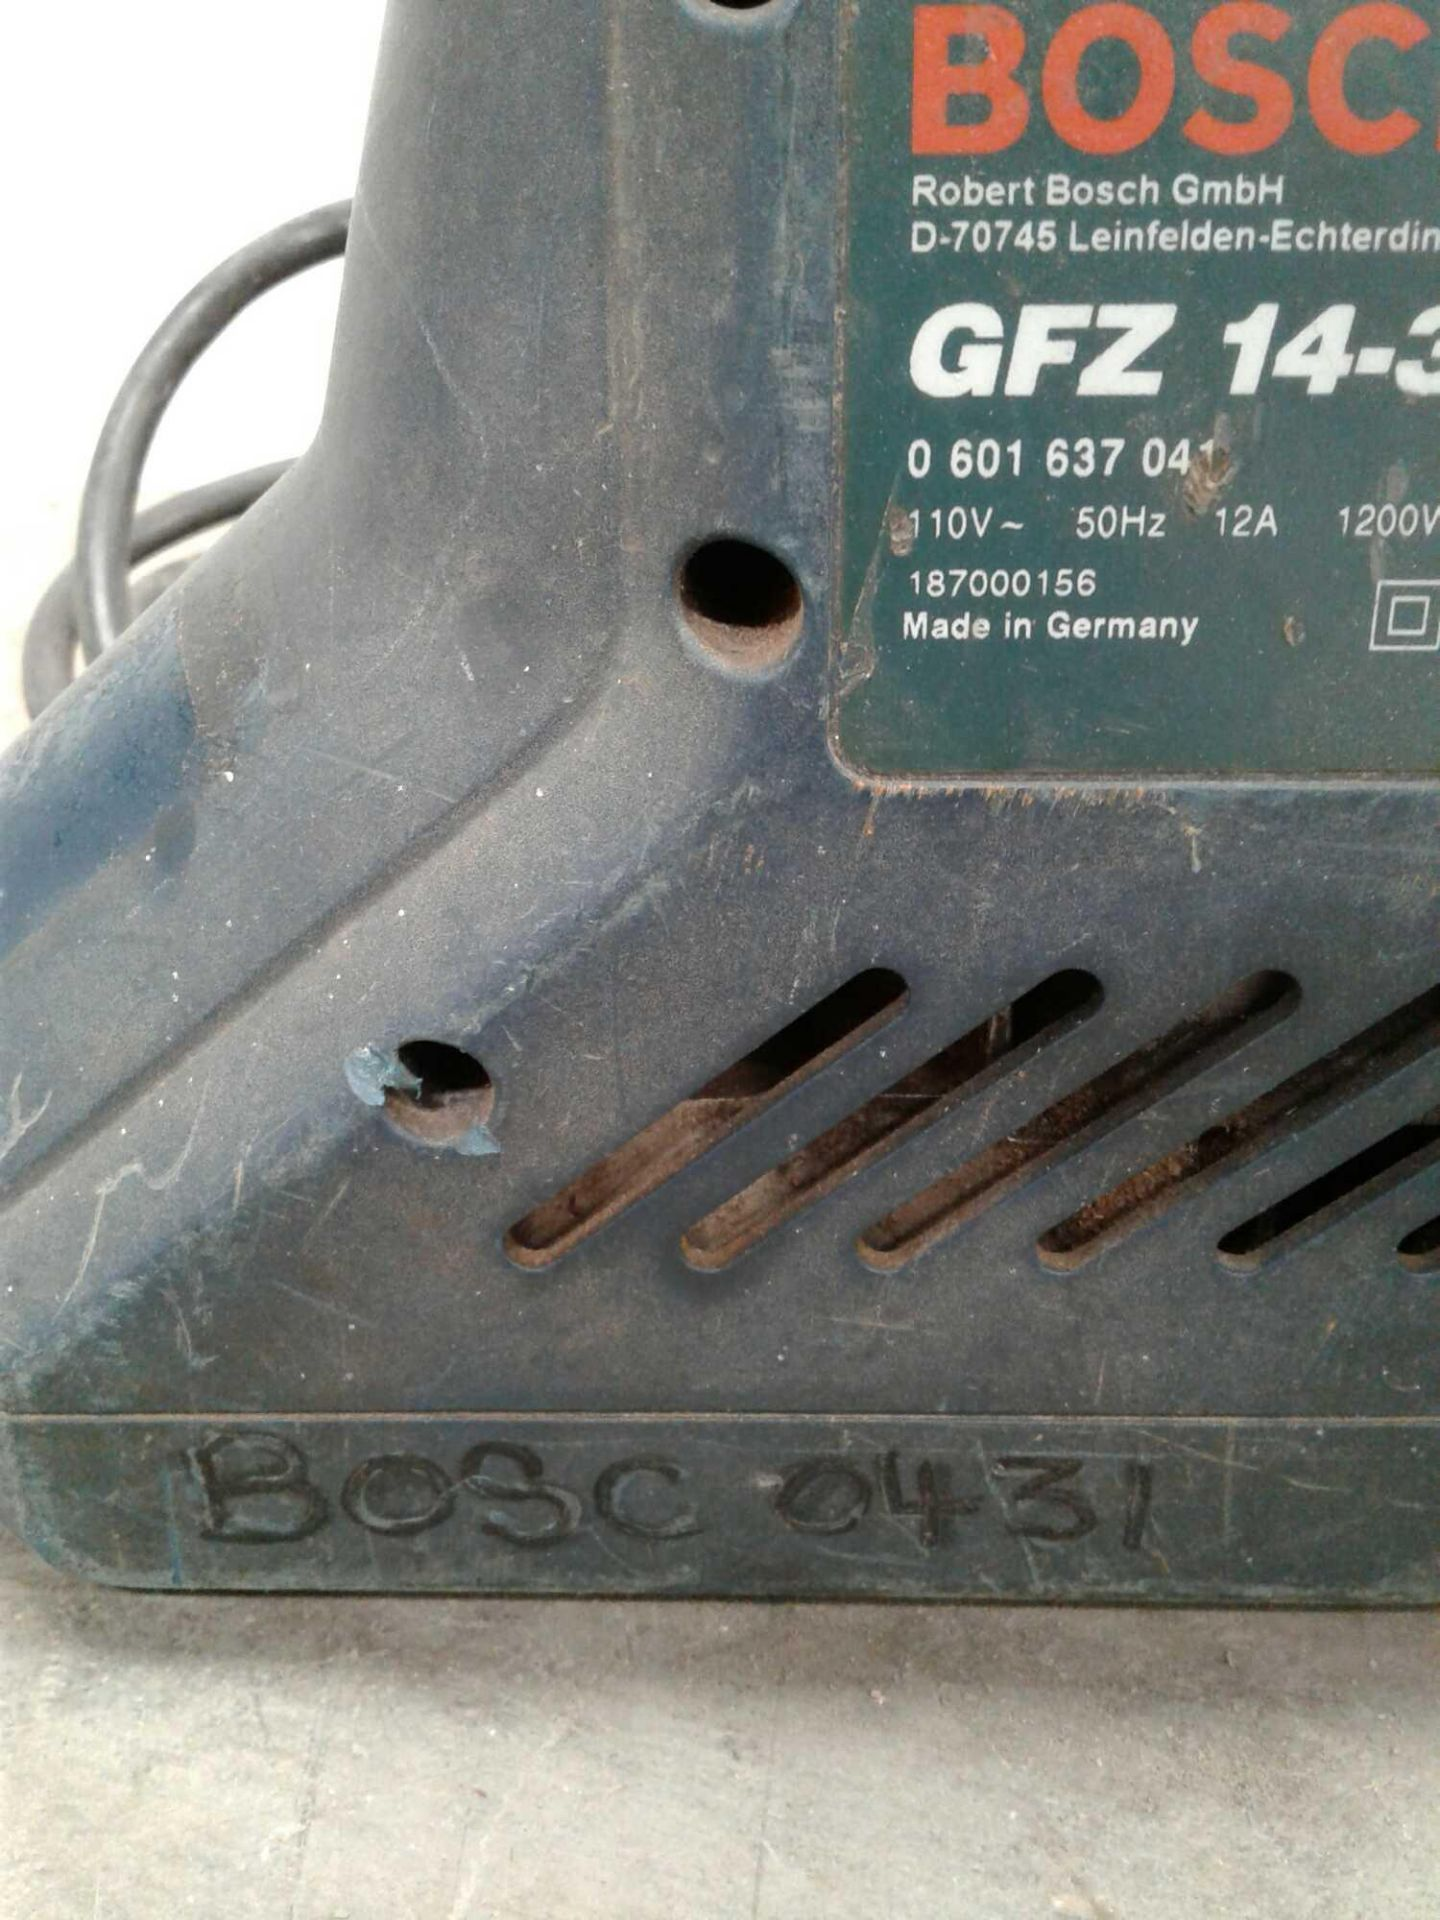 Lot 18 - Bosch wood saw 110 v